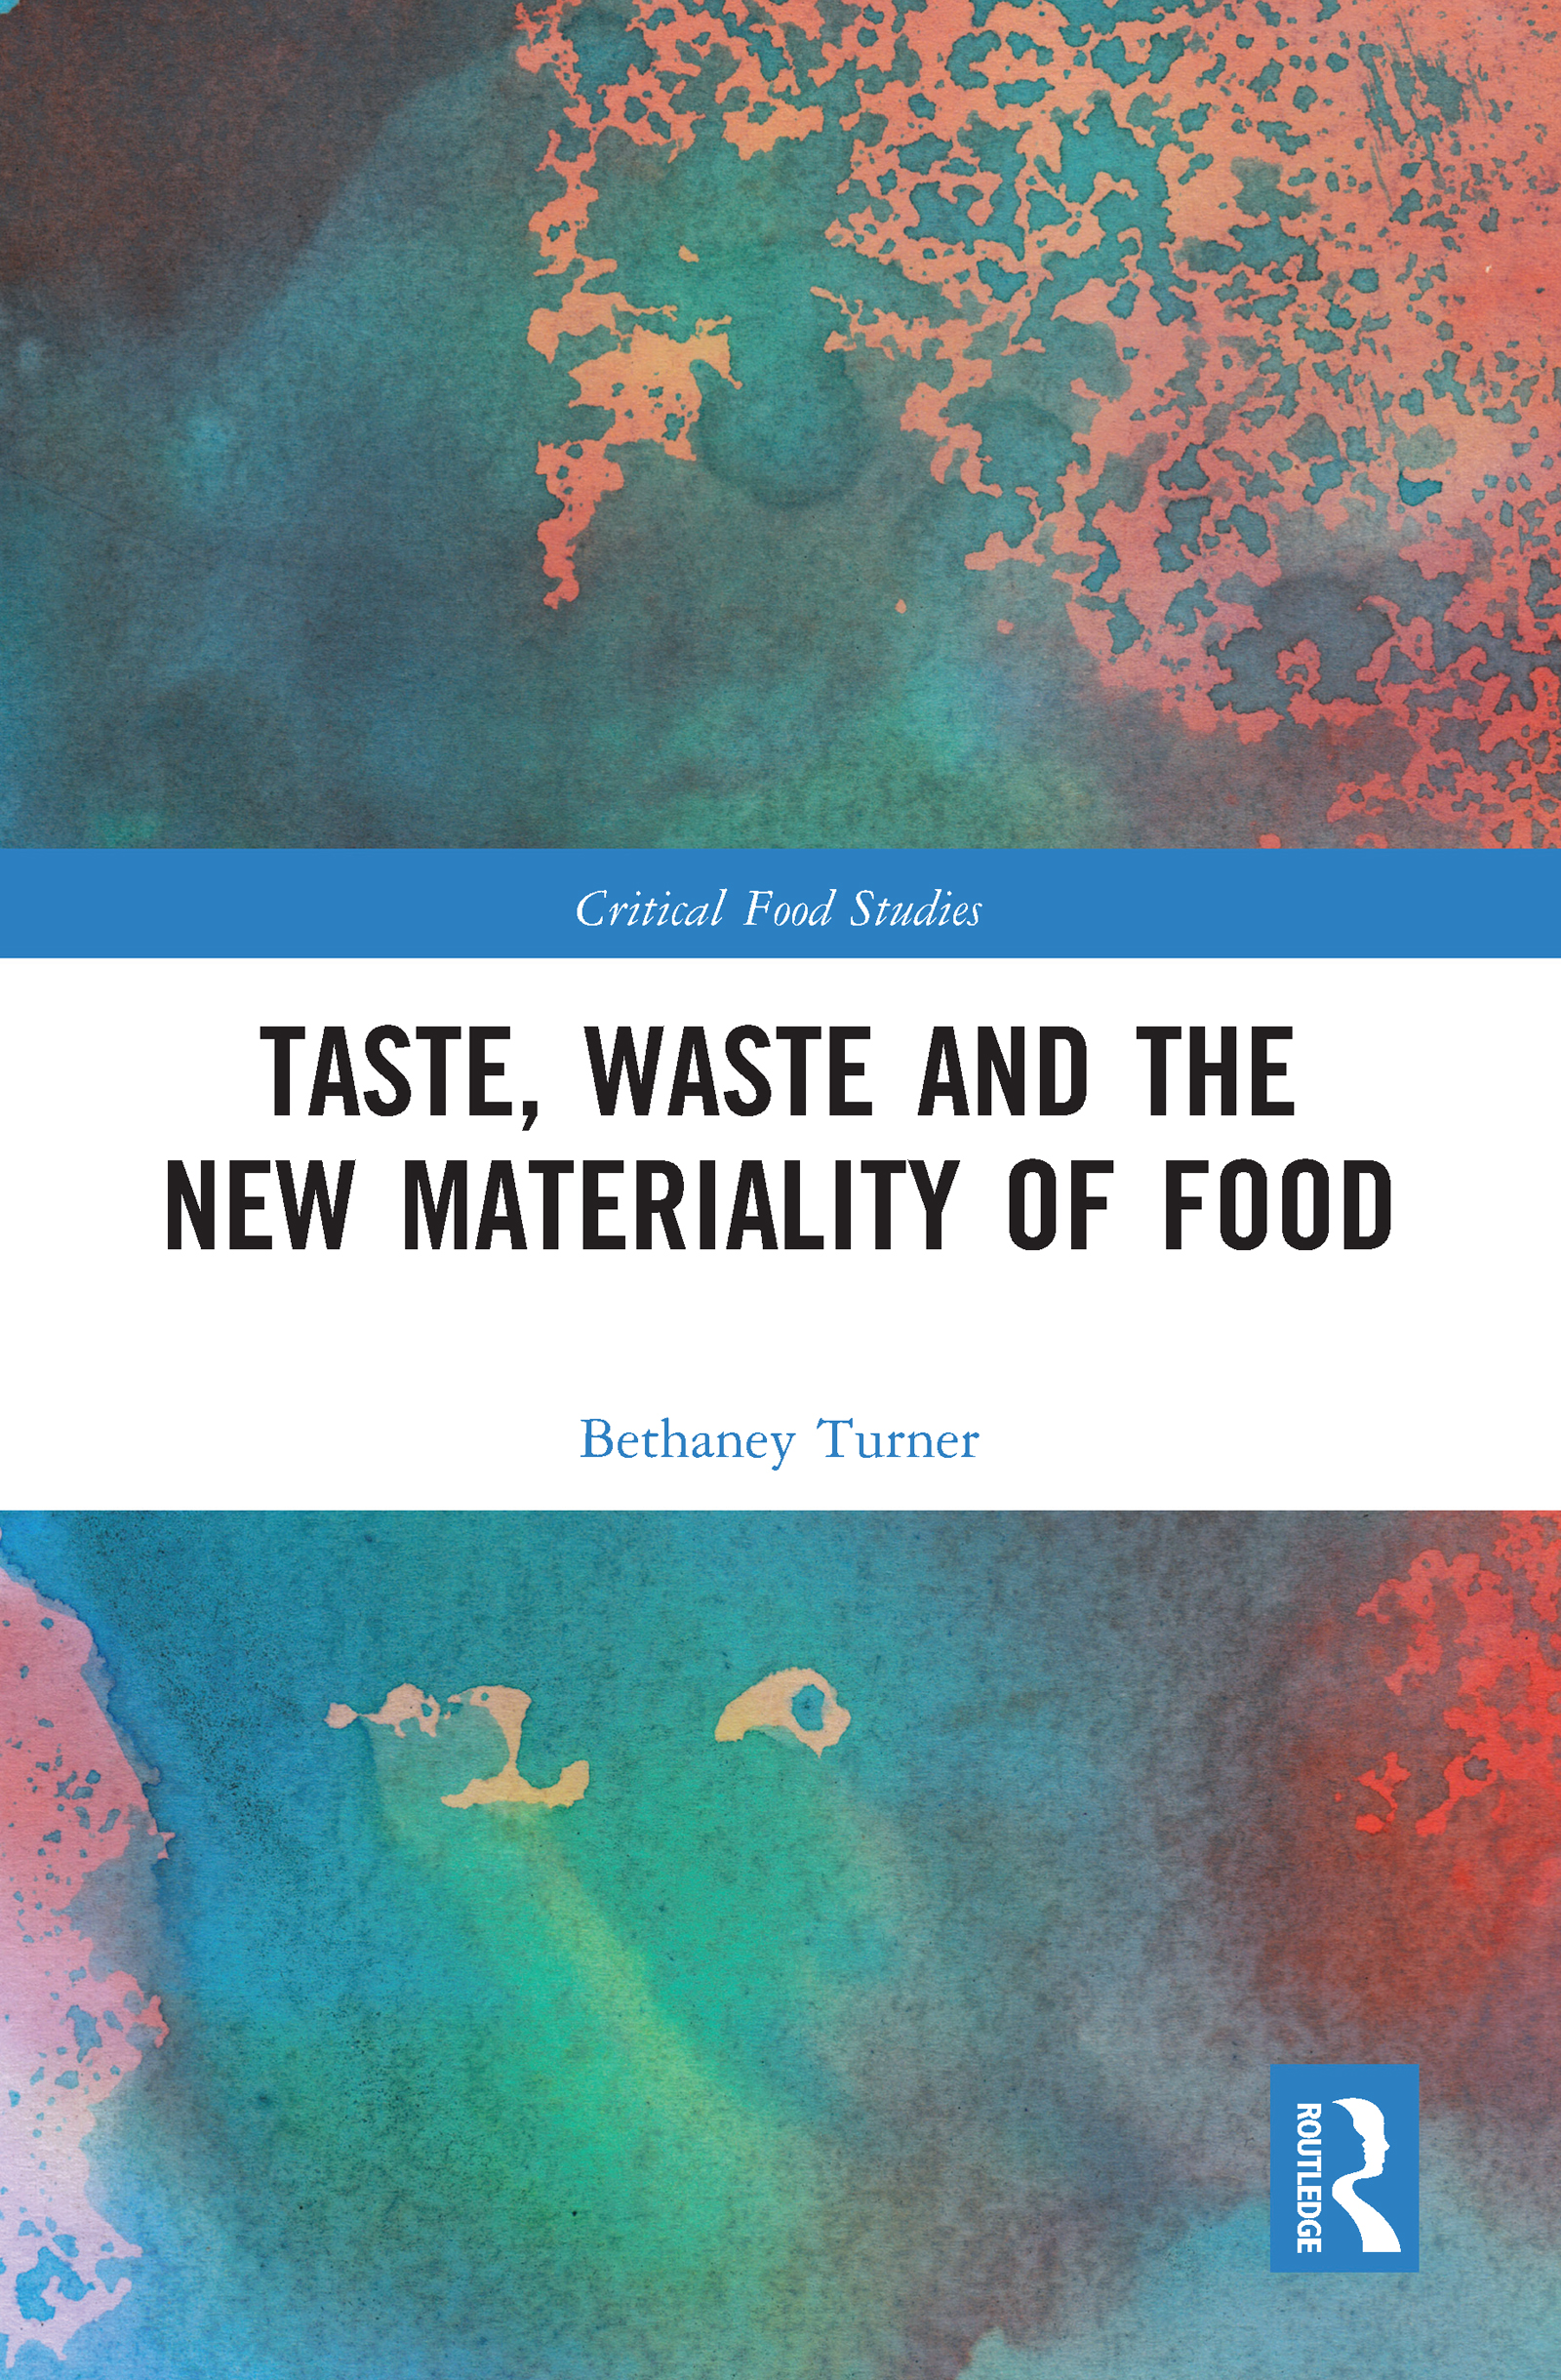 Taste, Waste and the New Materiality of Food